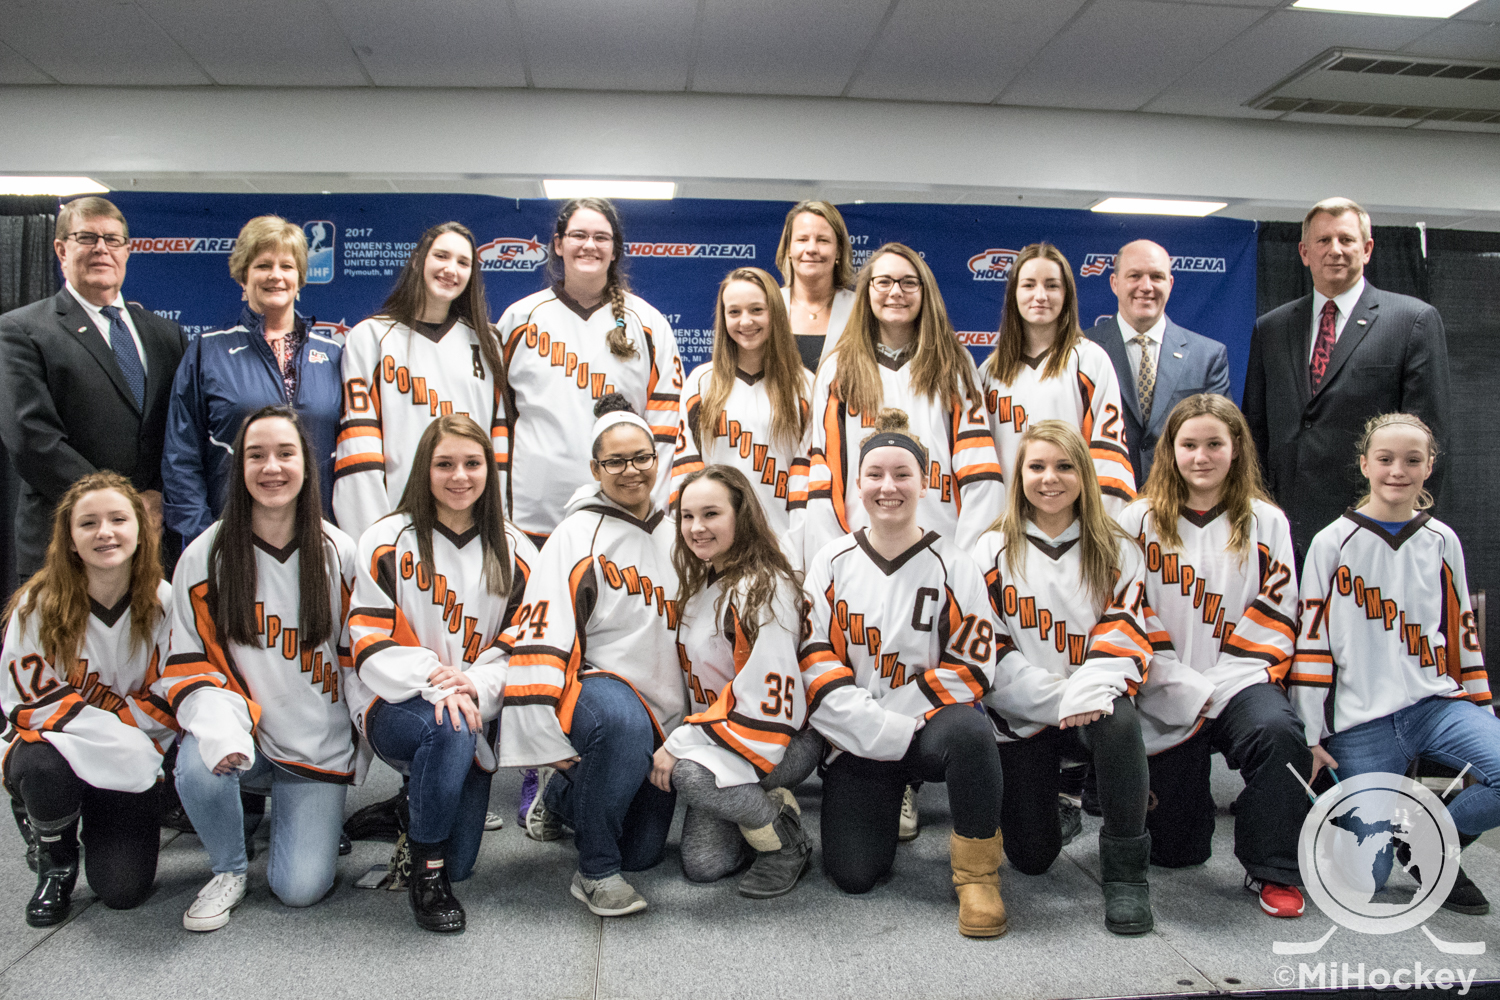 Members of the Compuware girls' 12U and 16U teams pose with USA Hockey's Dave Ogrean, MAHA's Jean Laxton, USAH's Reagan Carey, Plymouth Township supervisor Shannon Price and USAH president Jim Smith. (Photo by Michael Caples/MiHockey)